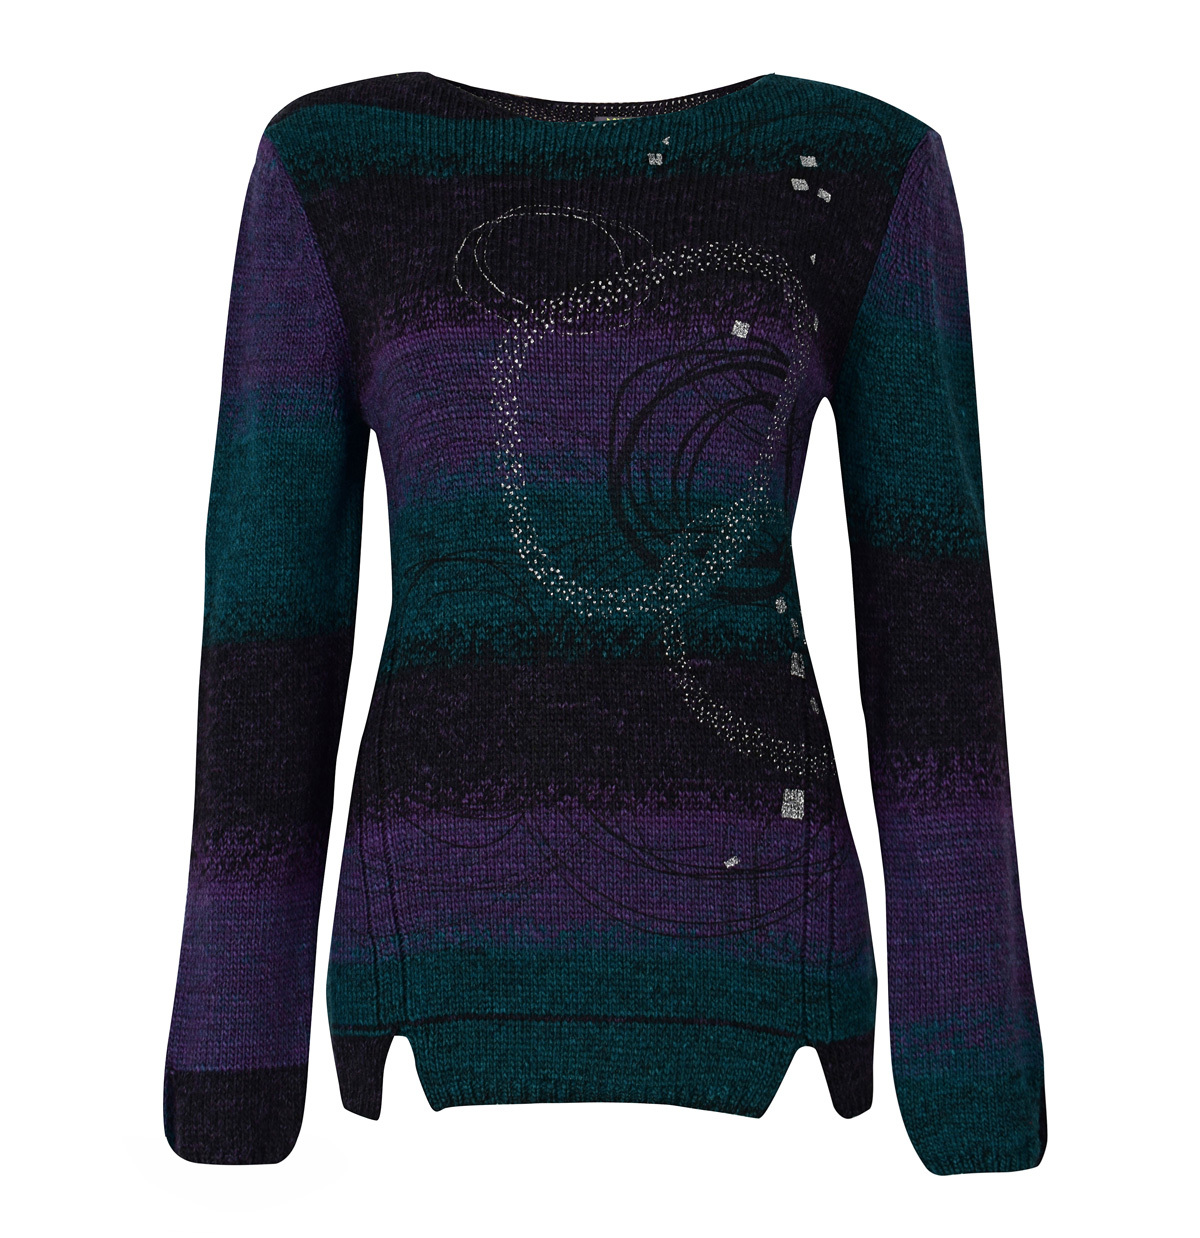 Dolcezza: Purple Star Cut Out Hem Sweater SOLD OUT